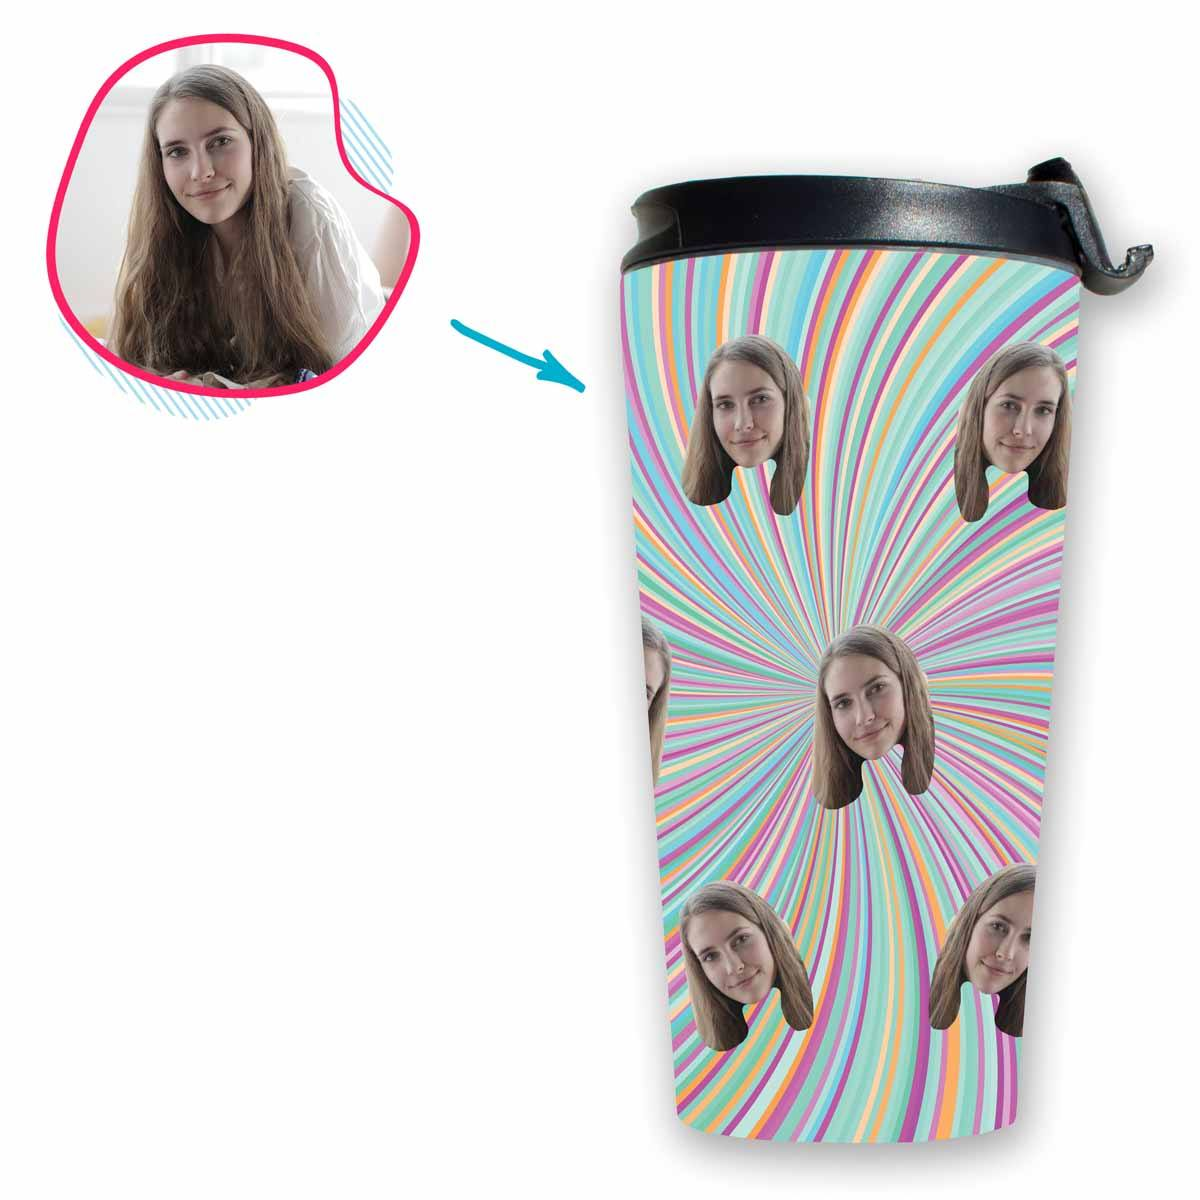 fantasy Fantasy travel mug personalized with photo of face printed on it